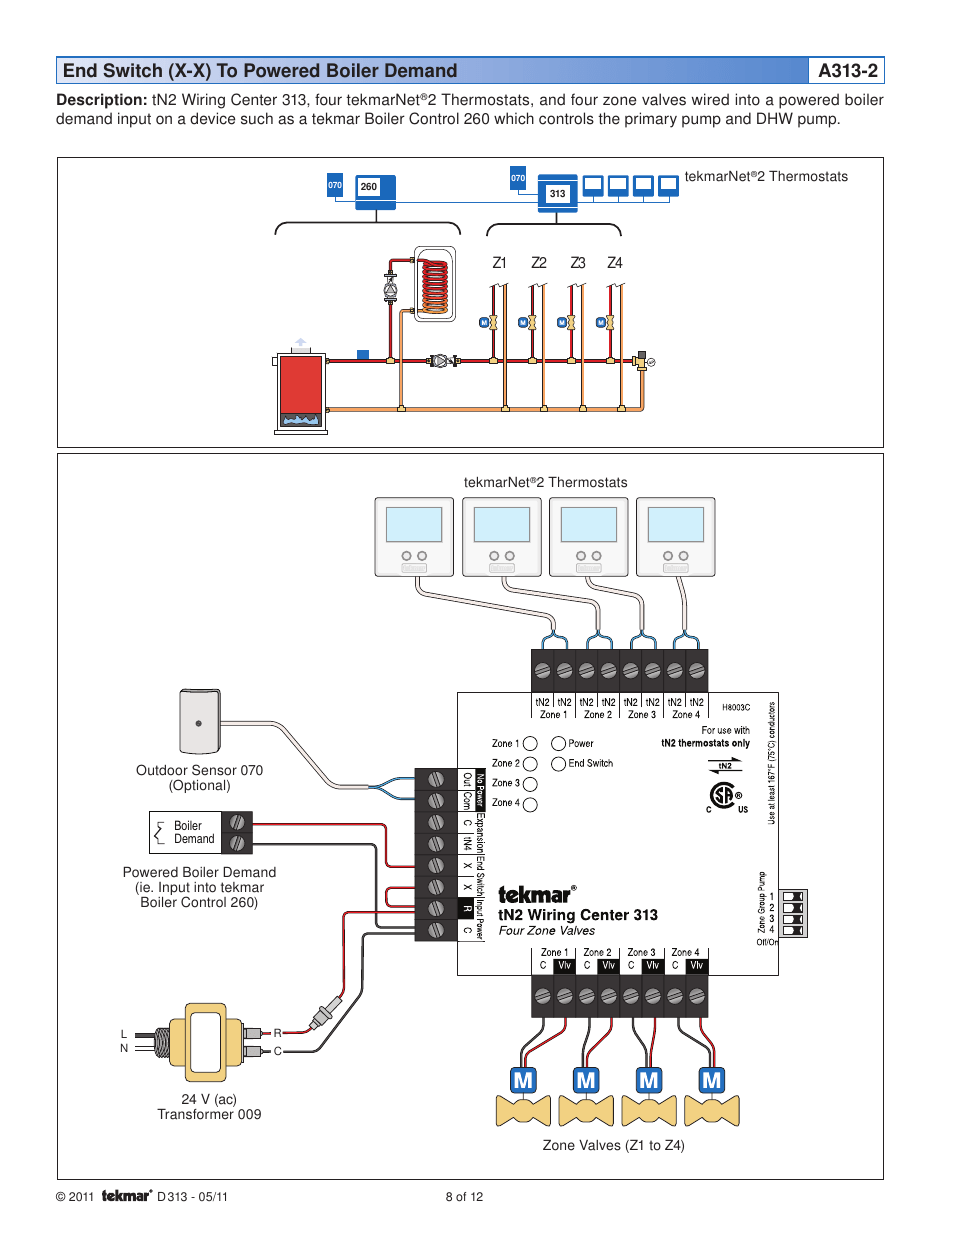 hight resolution of end switch x x to powered boiler demand a313 2 tekmar 313 tn2end switch x x to powered boiler demand a313 2 tekmar 313 tn2 wiring center installation